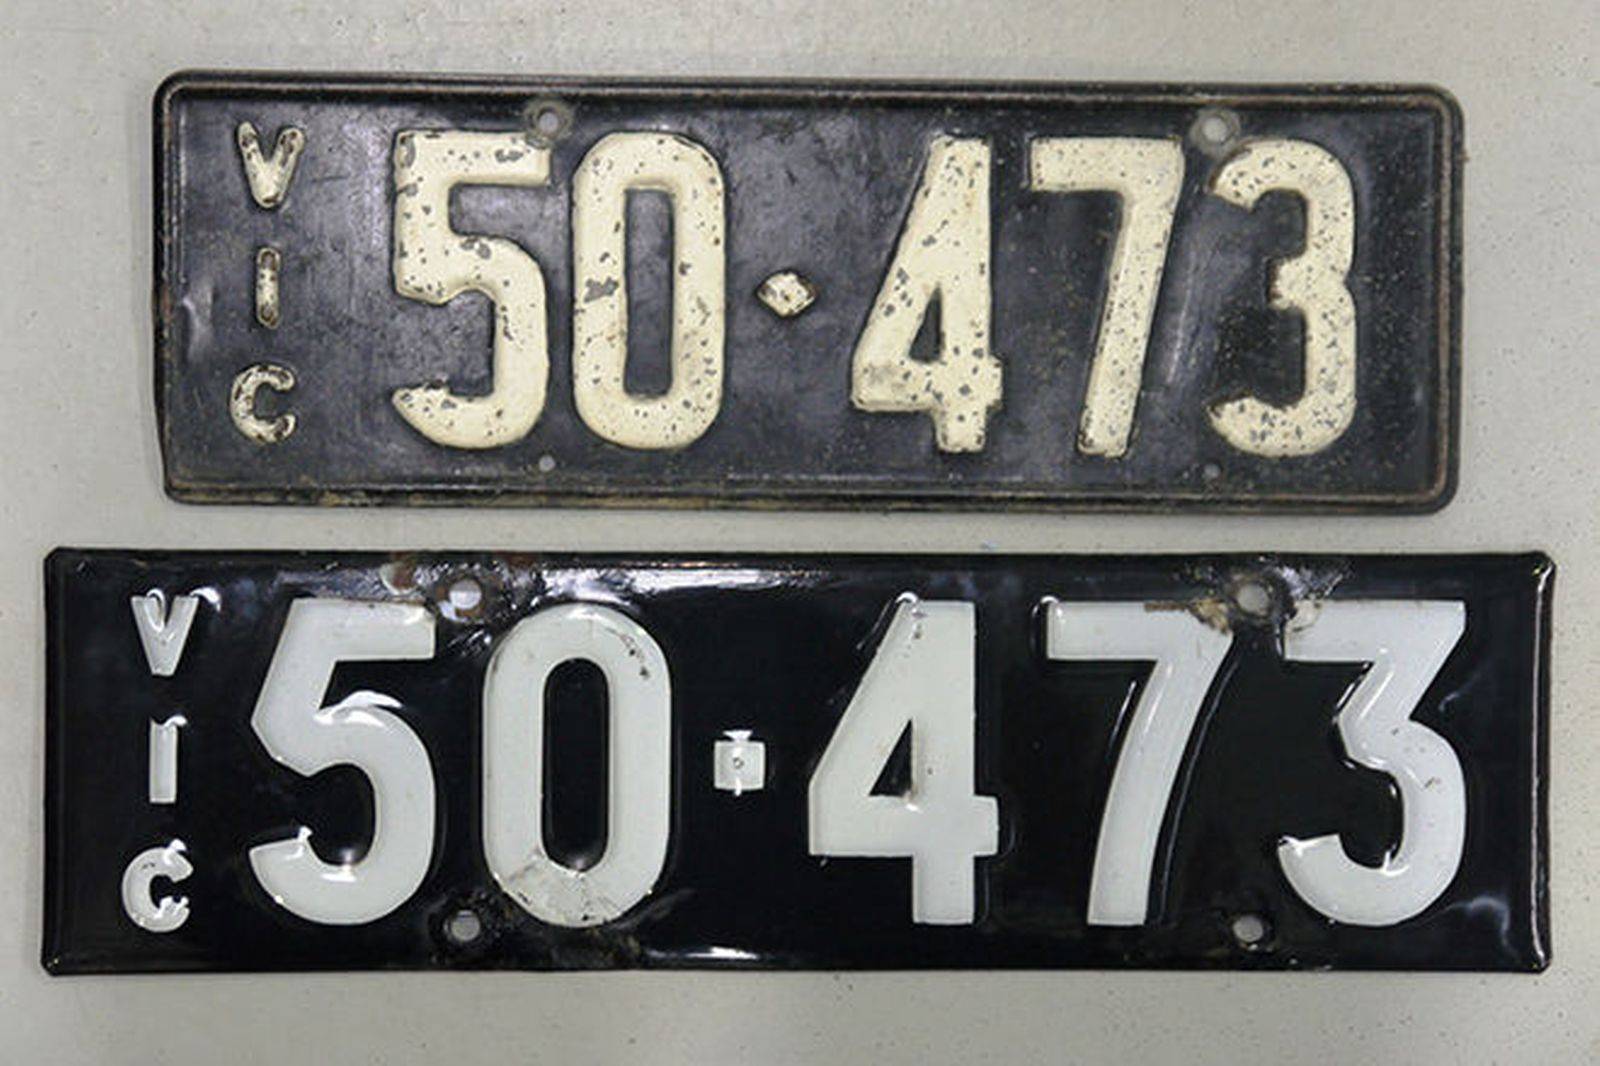 Number Plates - Victorian Numerical Number Plates '50-473'